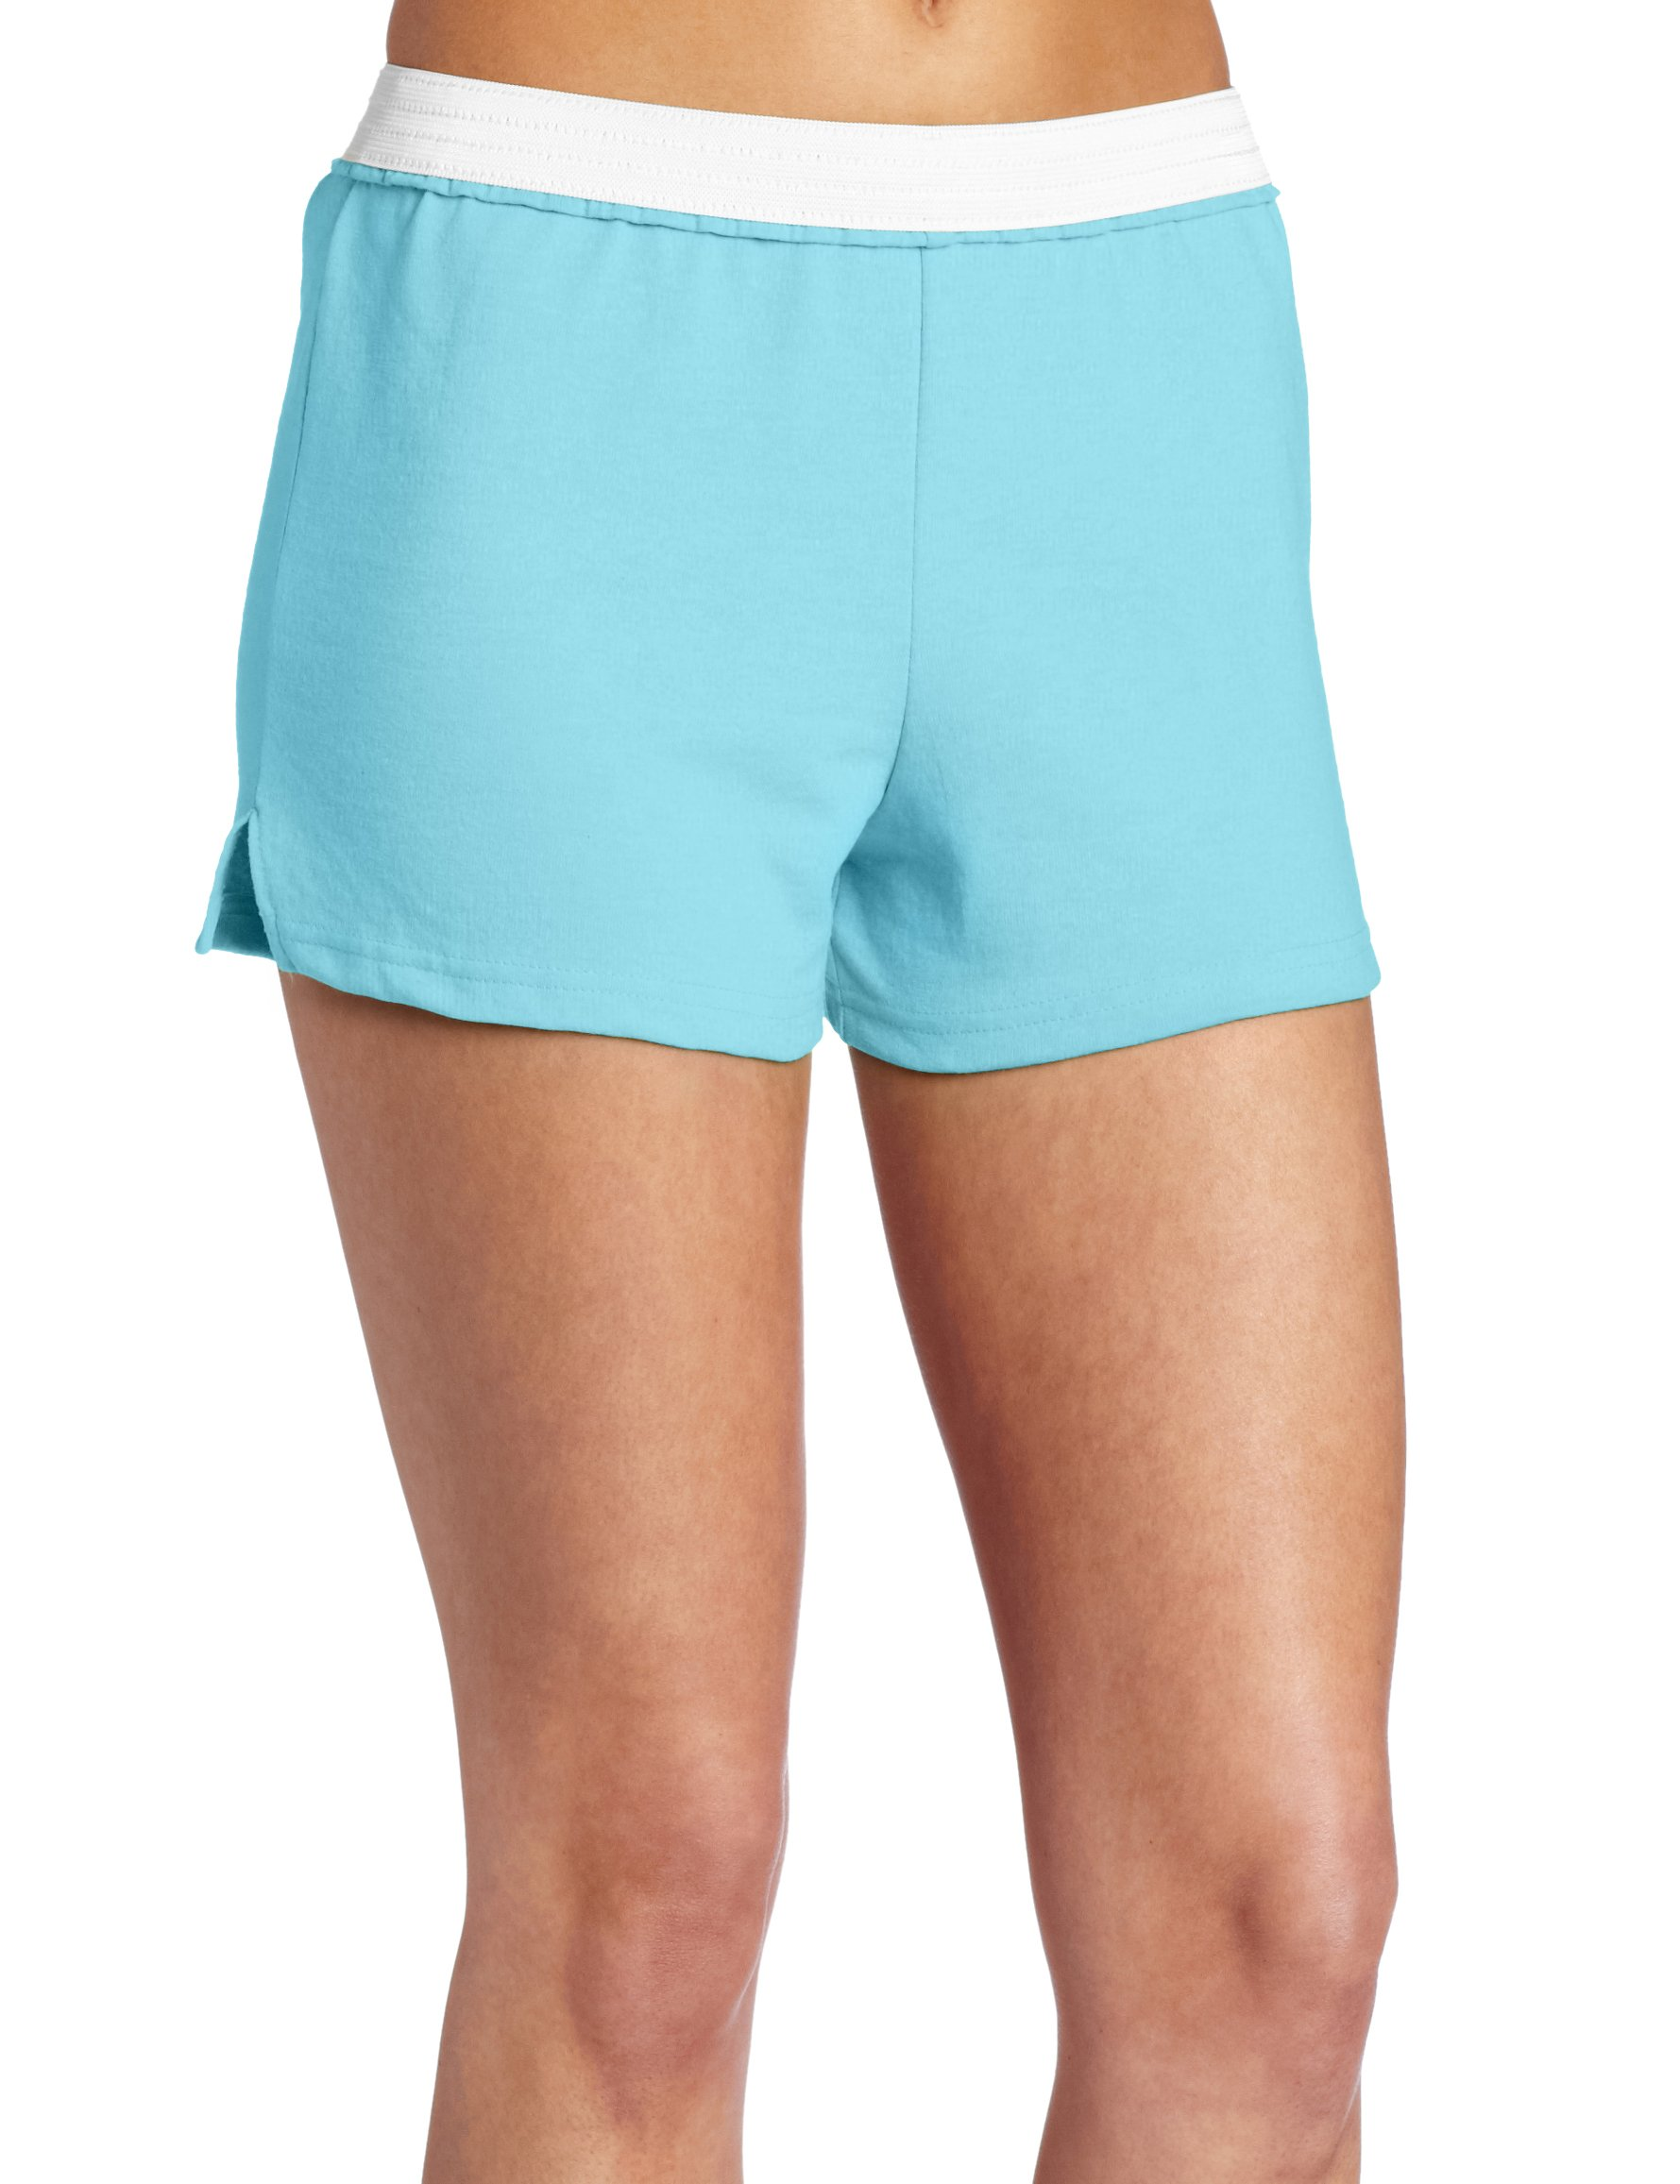 Soffe Juniors Athletic Short, Lt. Turquoise, Small